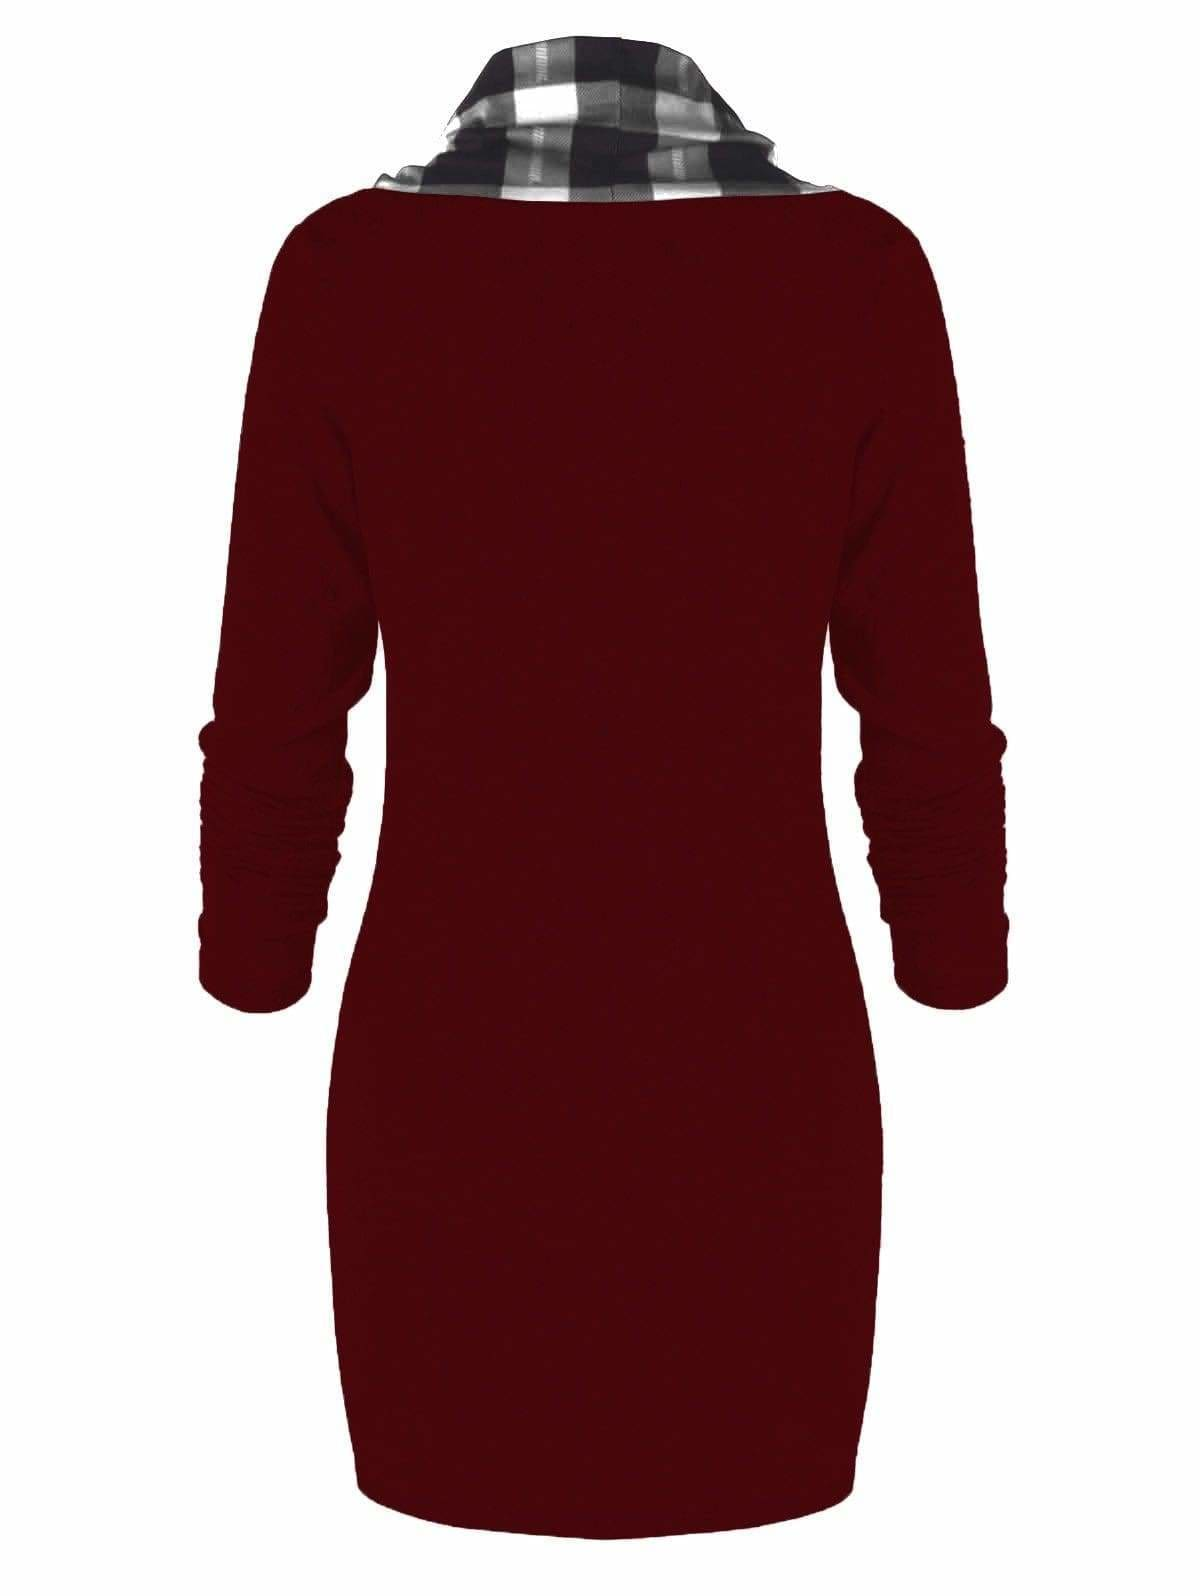 The Best Womens Casual Sheath Cowl Neck Long Sleeve Dress Online - Source Silk